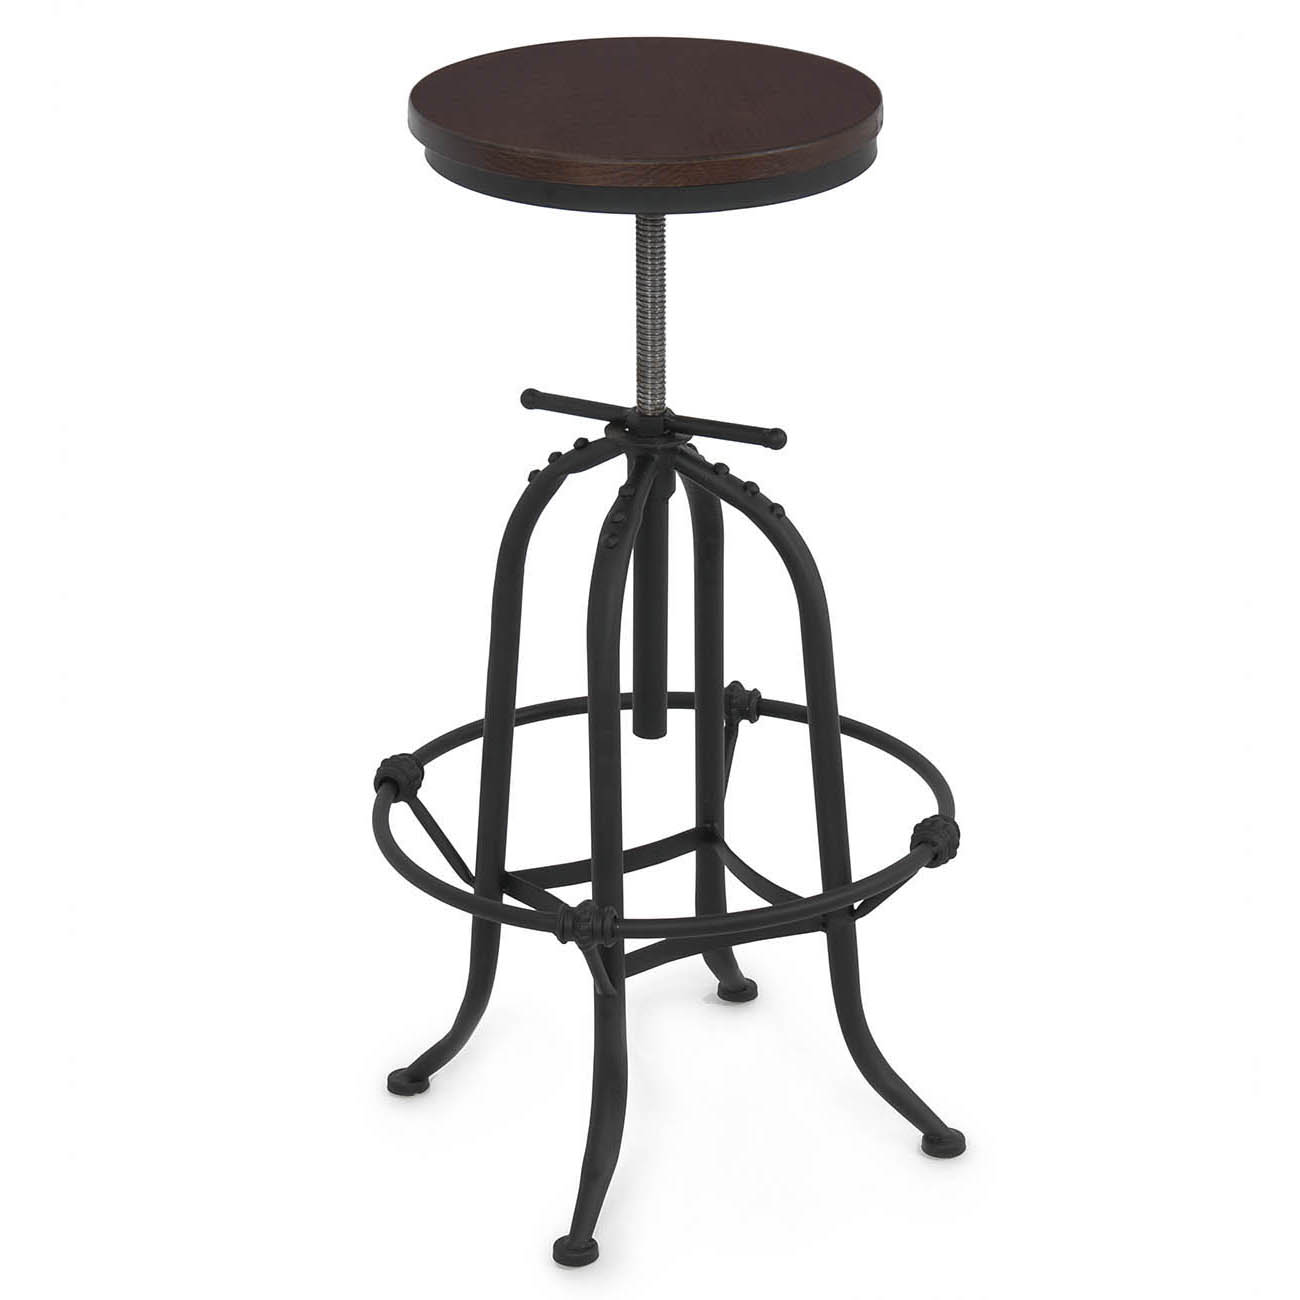 countertop height folding chairs lazy boy swivel rustic bar stool home adjustable seat